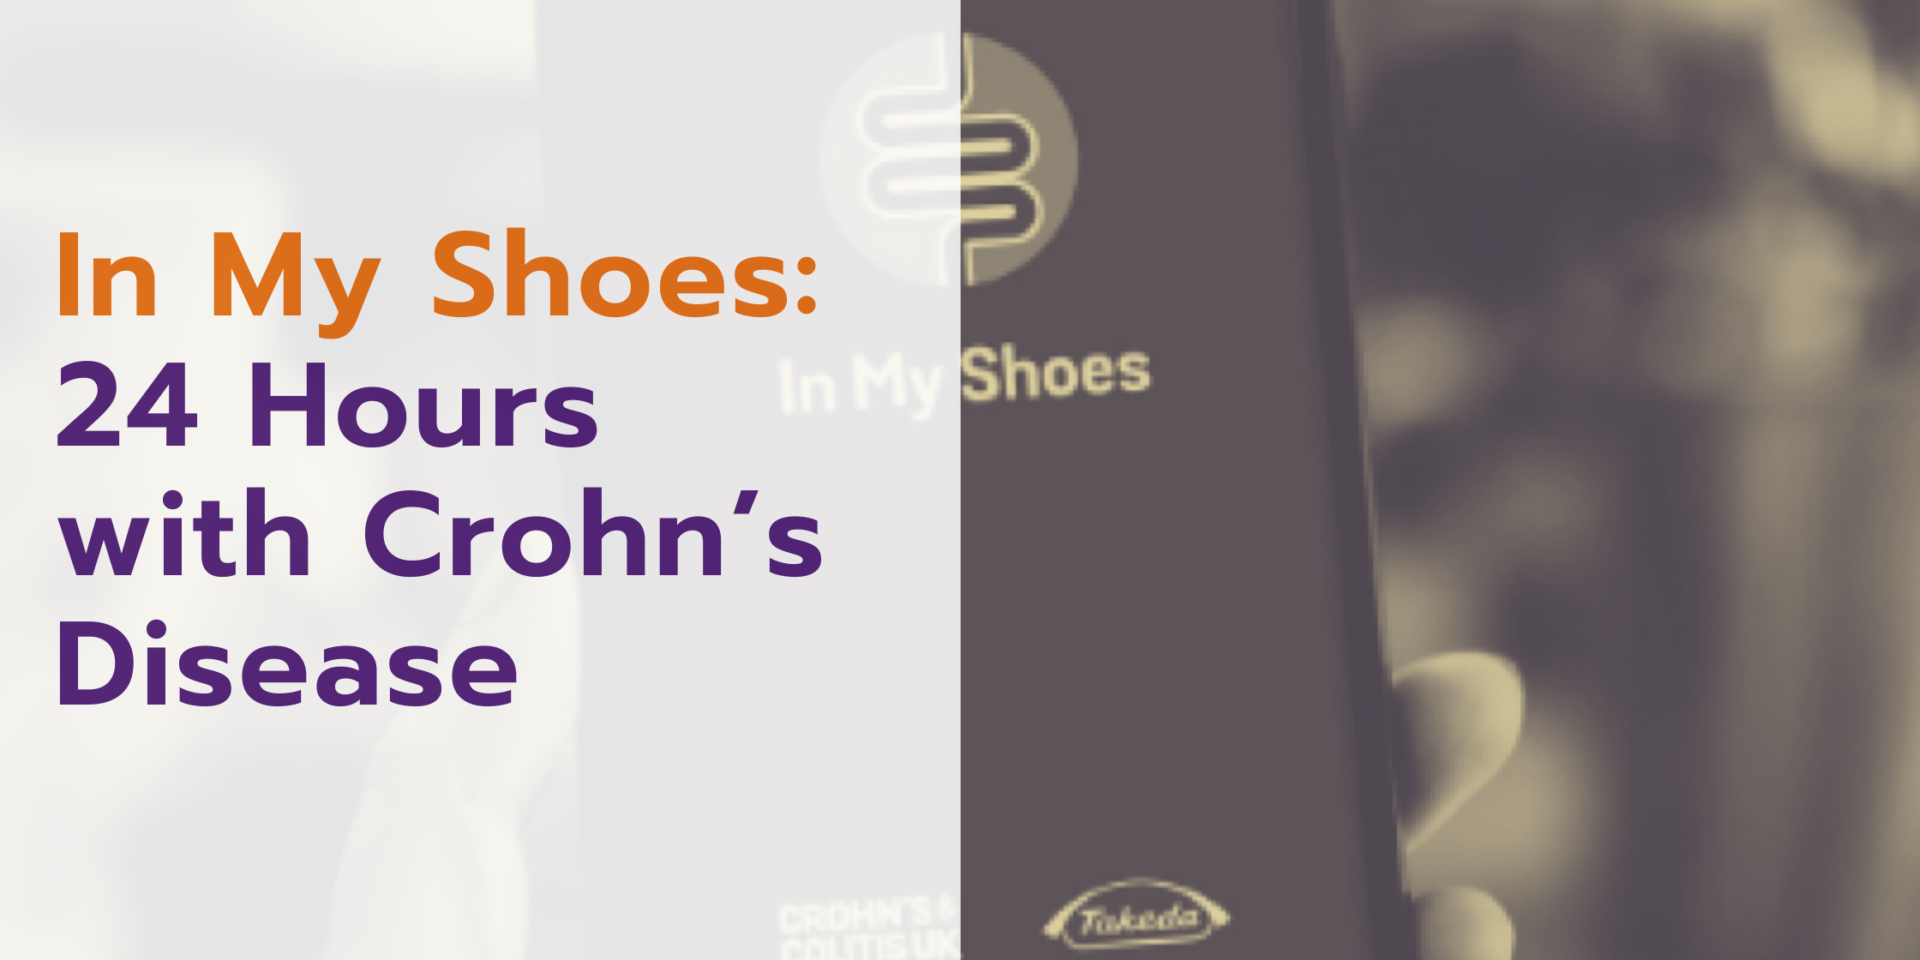 In My Shoes 24 Hours with Crohn's Disease Blog